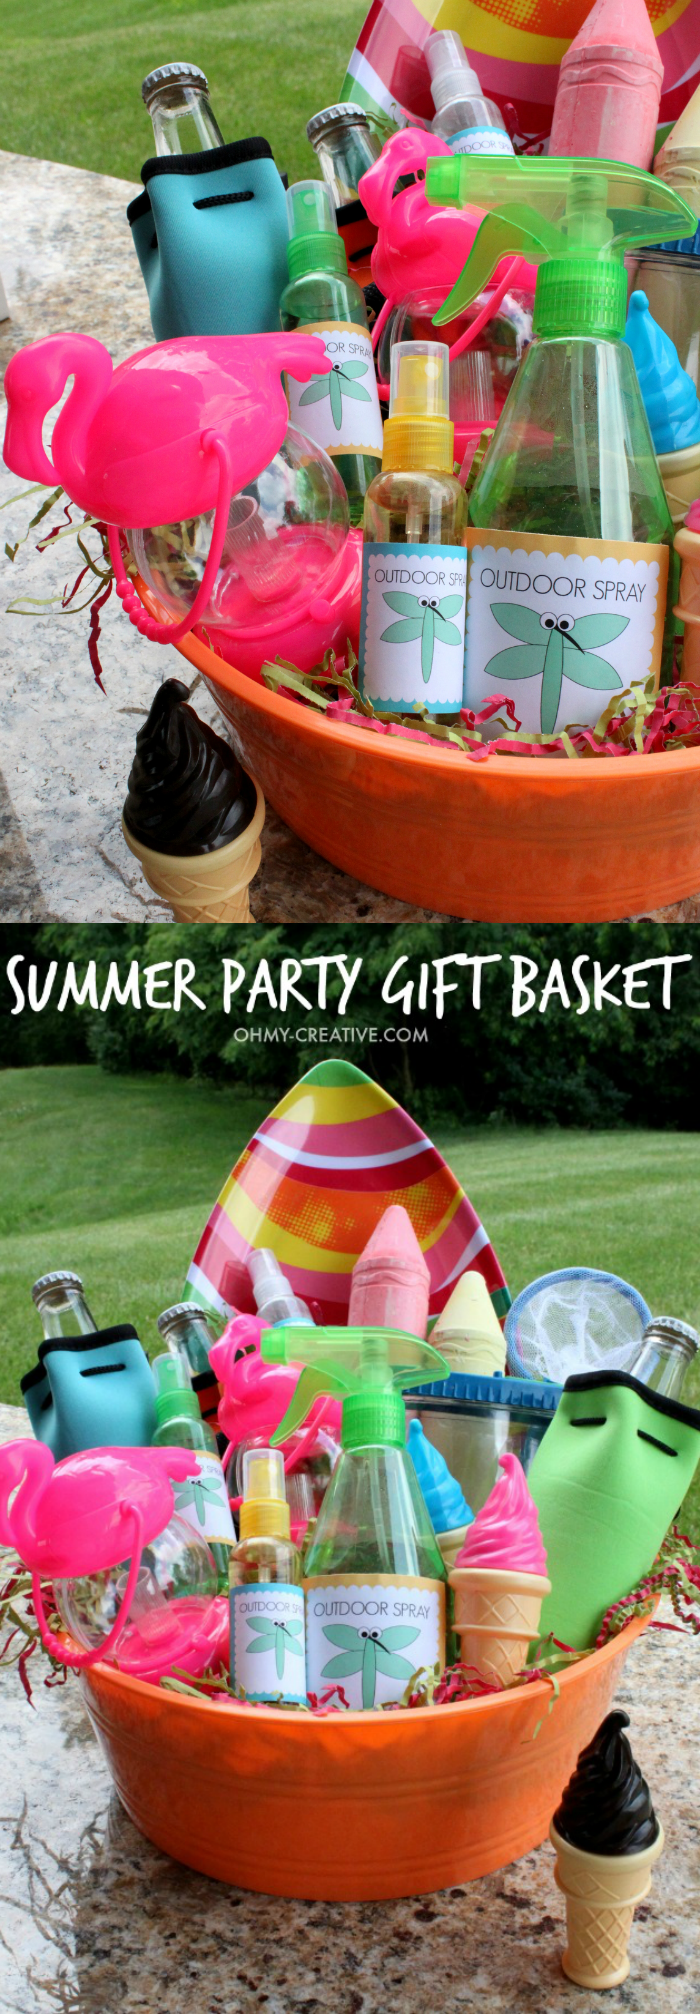 Summer party gift basket oh my creative for Holiday party gift ideas for the hostess